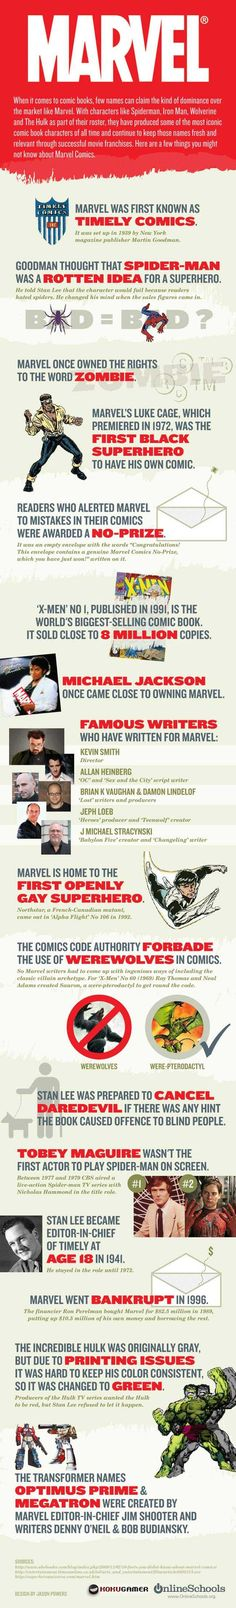 What do Spiderman, the Hulk and Ironman have in common? They are all part of the Marvel Comic family. Many would consider Marvel Comics to be the lead